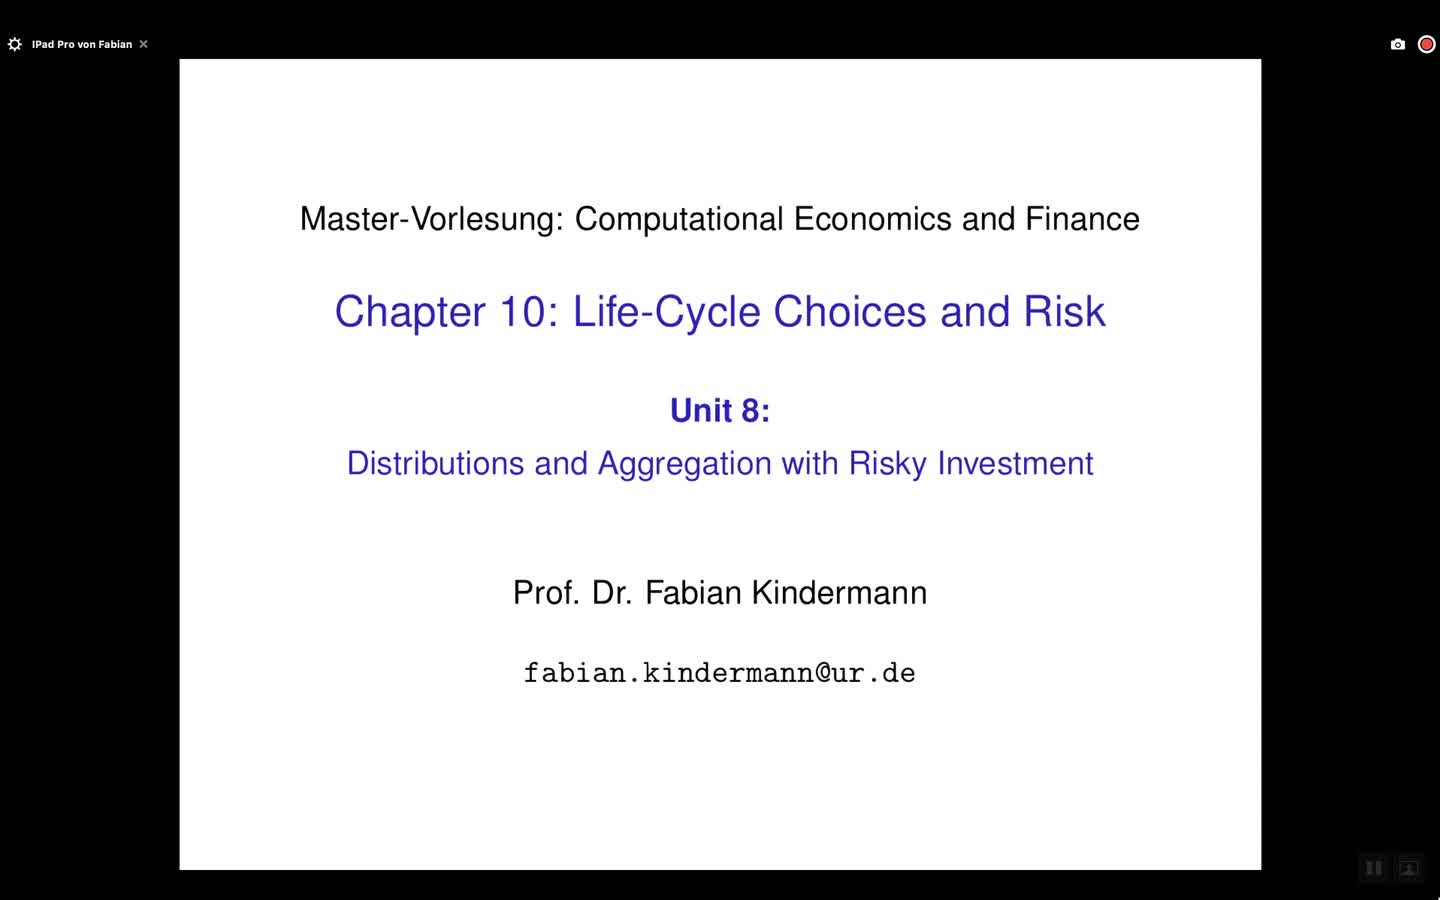 Chapter 10 - Unit 8 - Distributions and Aggregation with Risky Investment